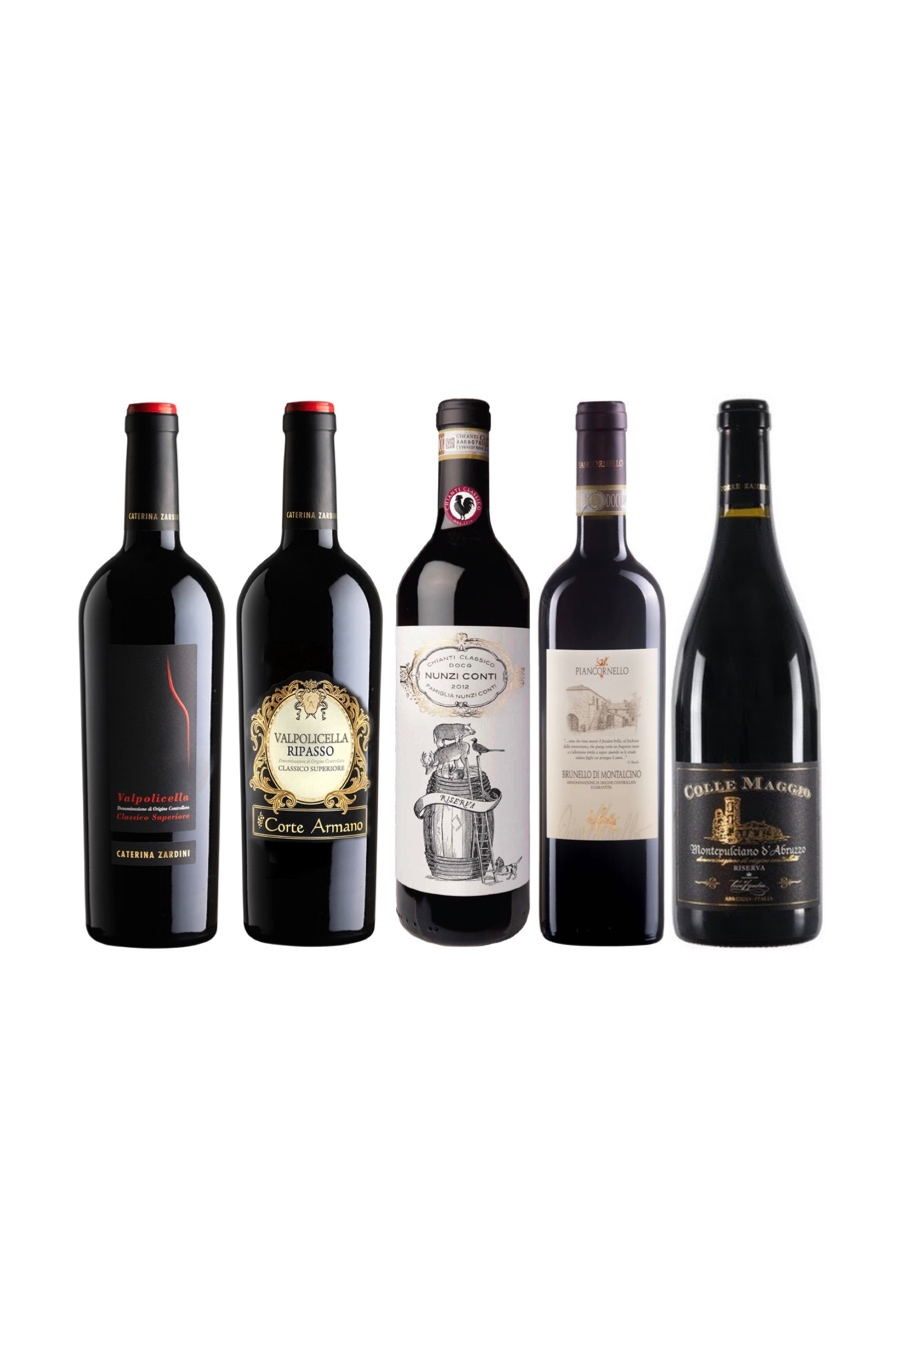 Pick any 4 Premium Italian Red Wine at only $328 and enjoys our special offer with a free wine Chiller (worth $199)